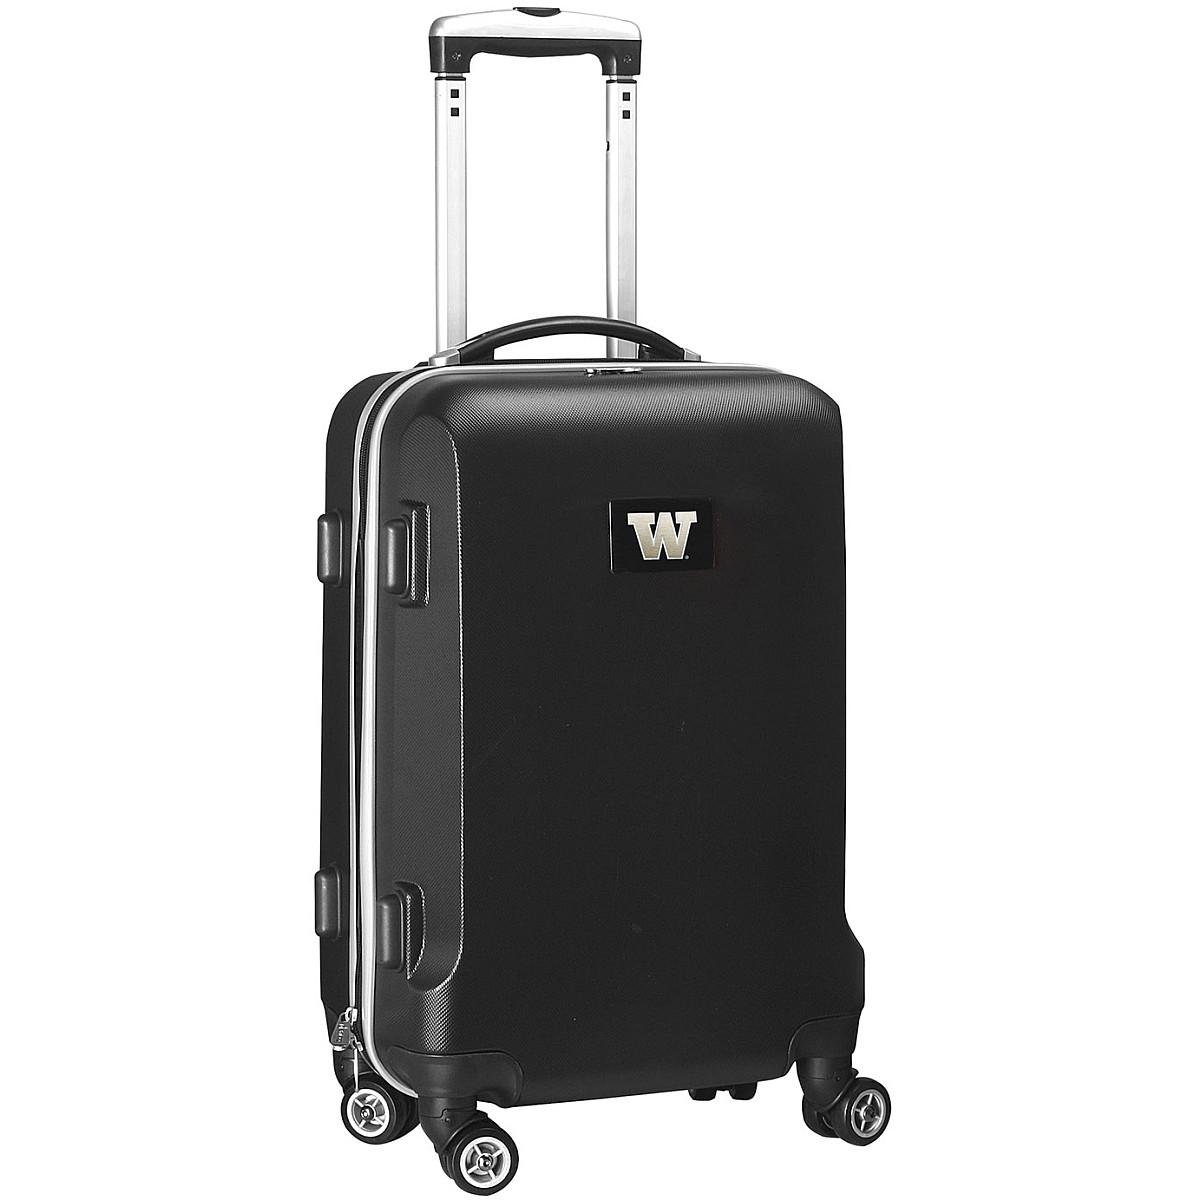 Denco NCAA Auburn Tigers Carry-On Hardcase Luggage Spinner, Black